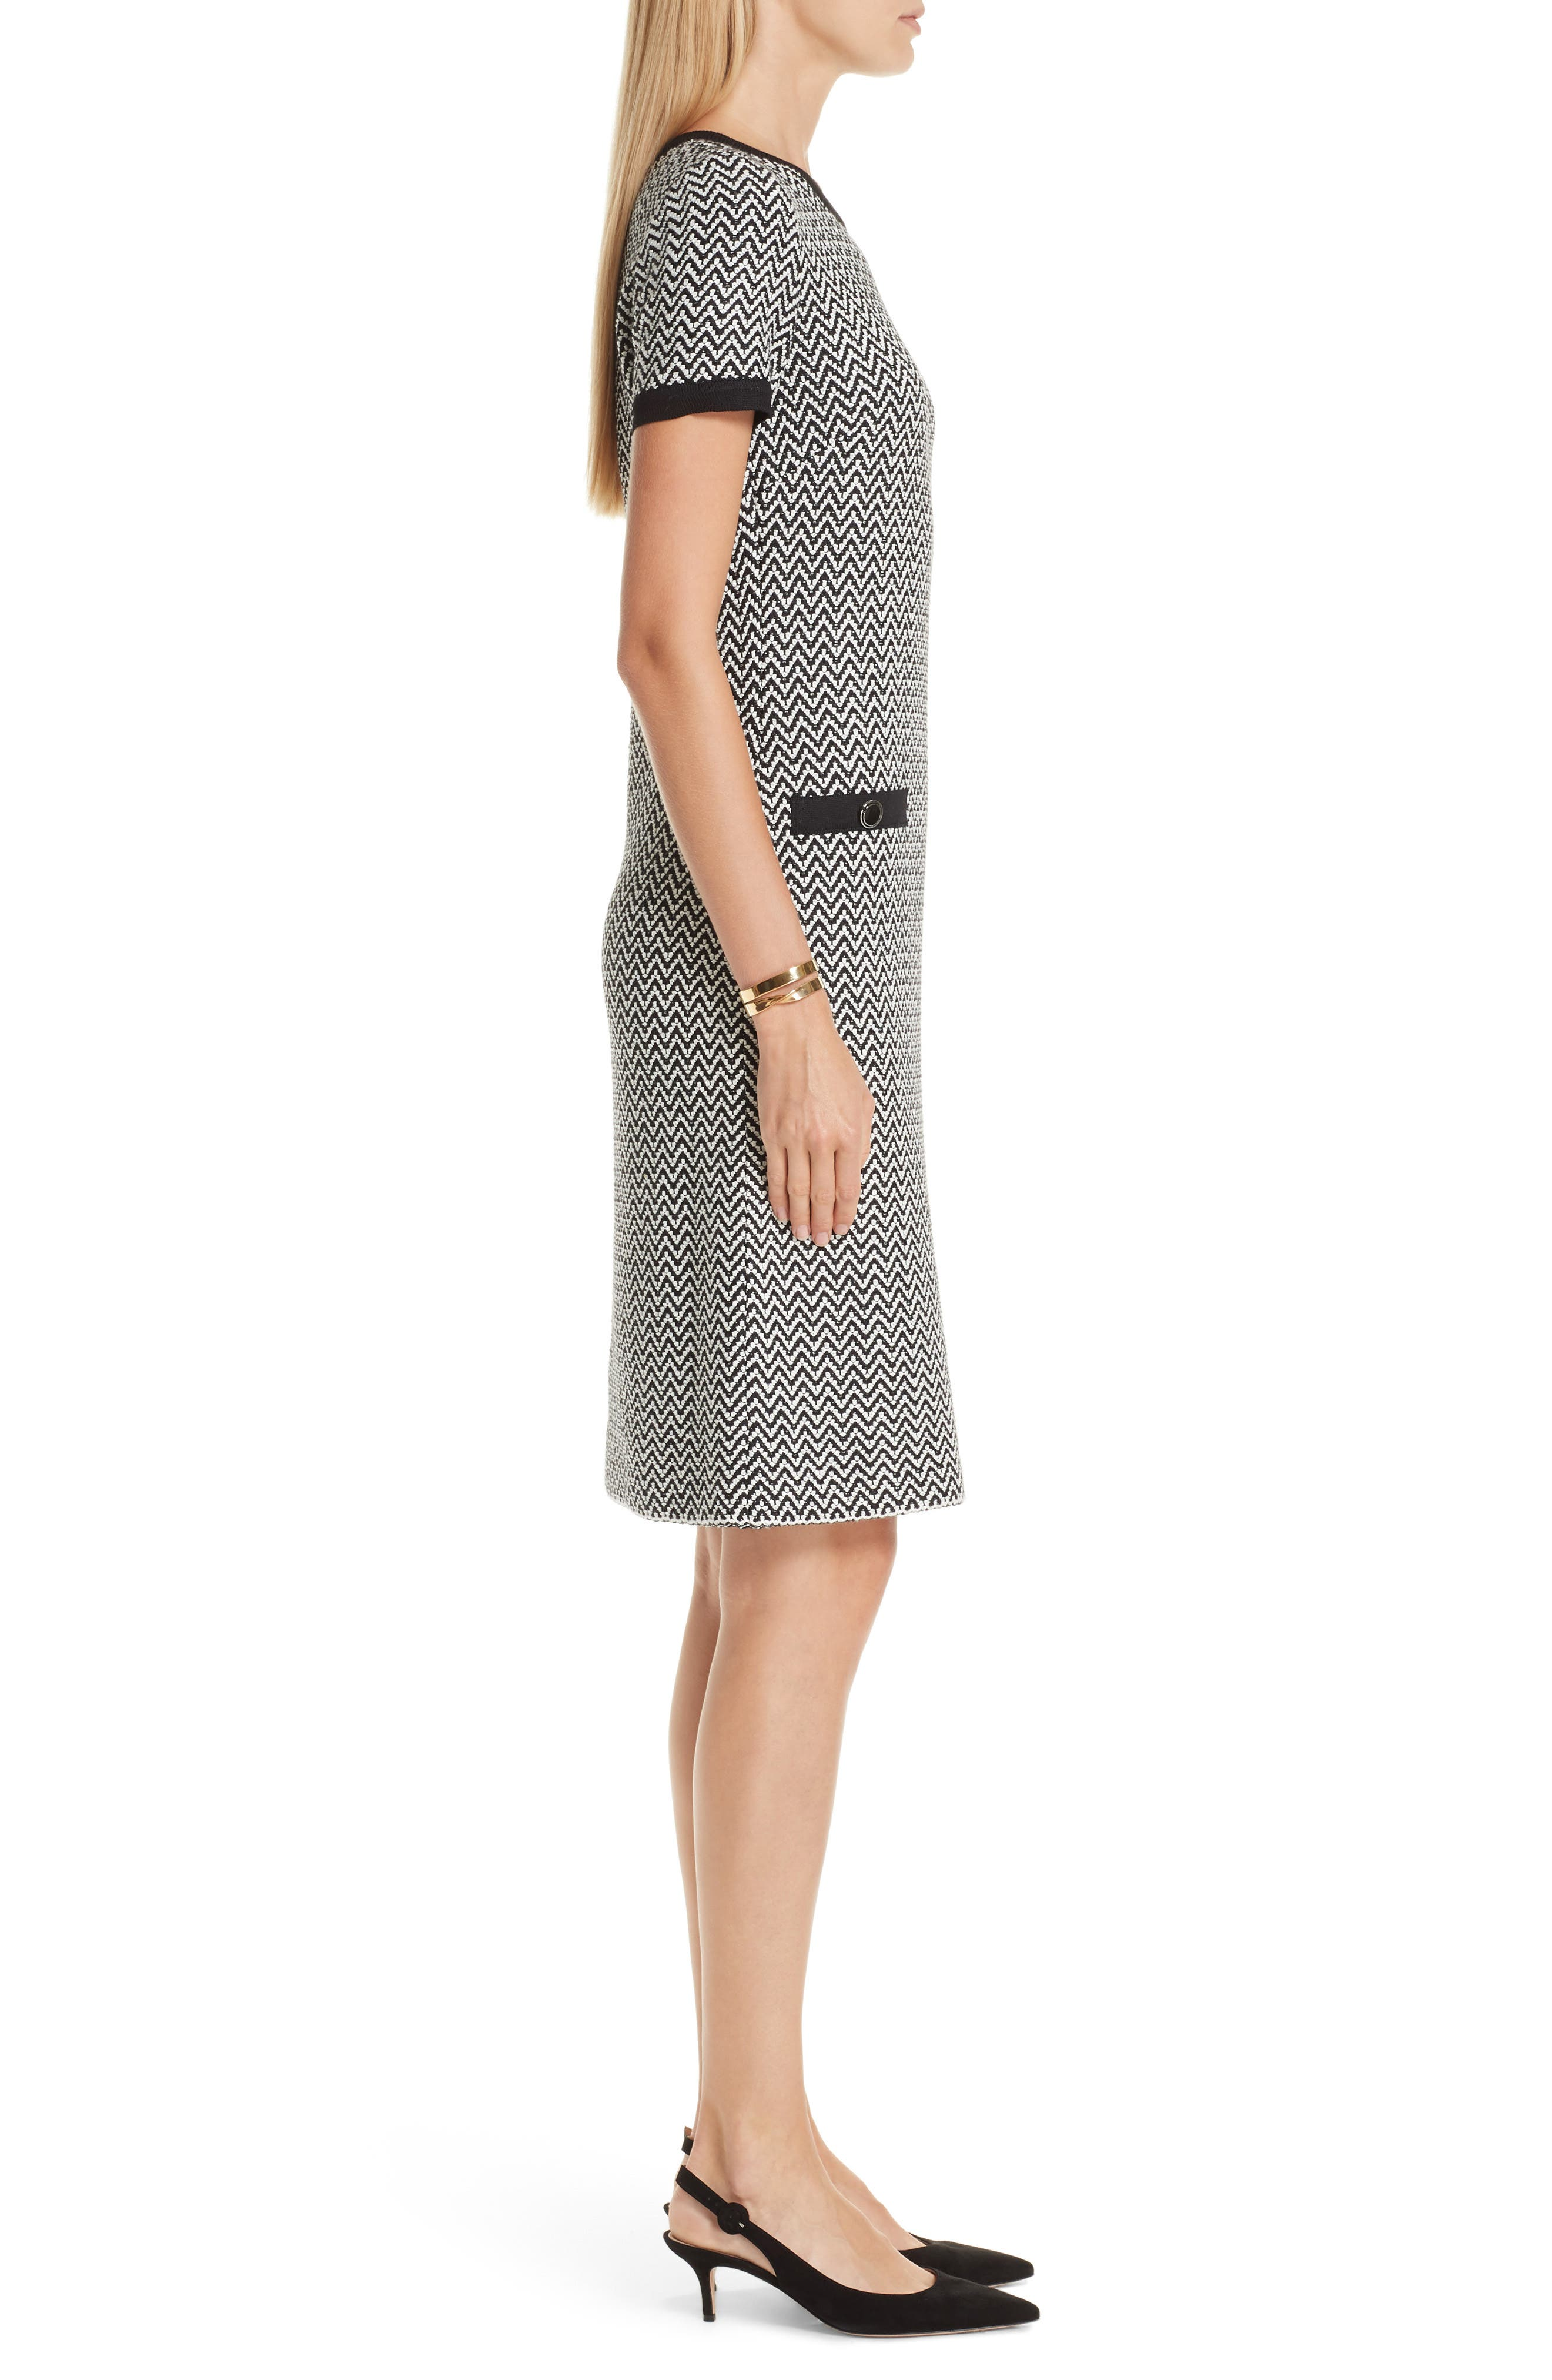 ST. JOHN COLLECTION, Mod Herringbone Knit Dress, Alternate thumbnail 3, color, CAVIAR/ CREAM